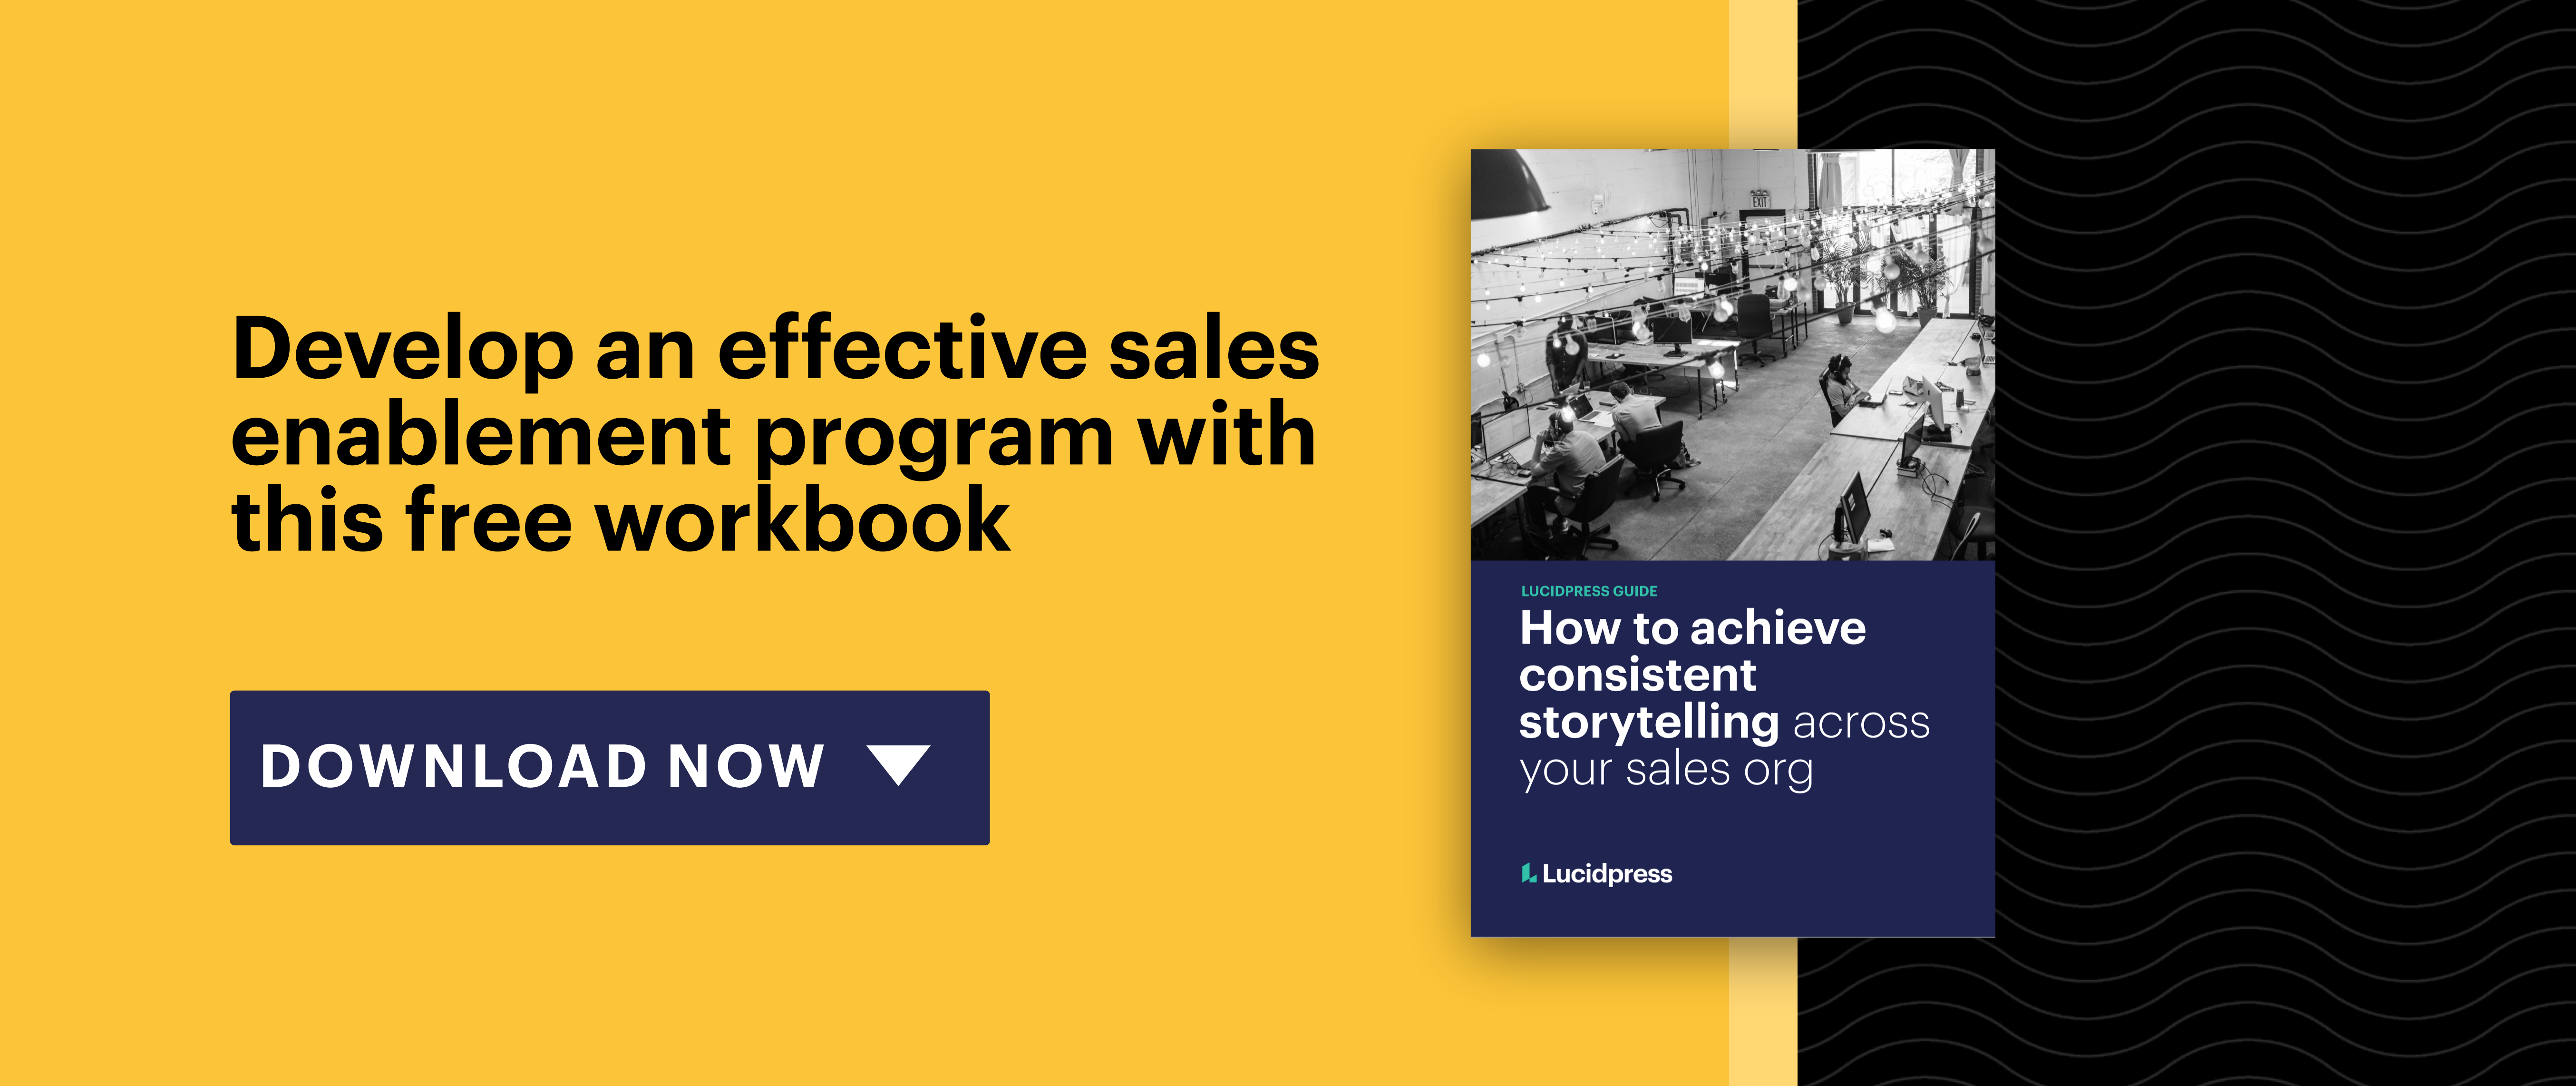 How to achieve consistent storytelling across your sales org